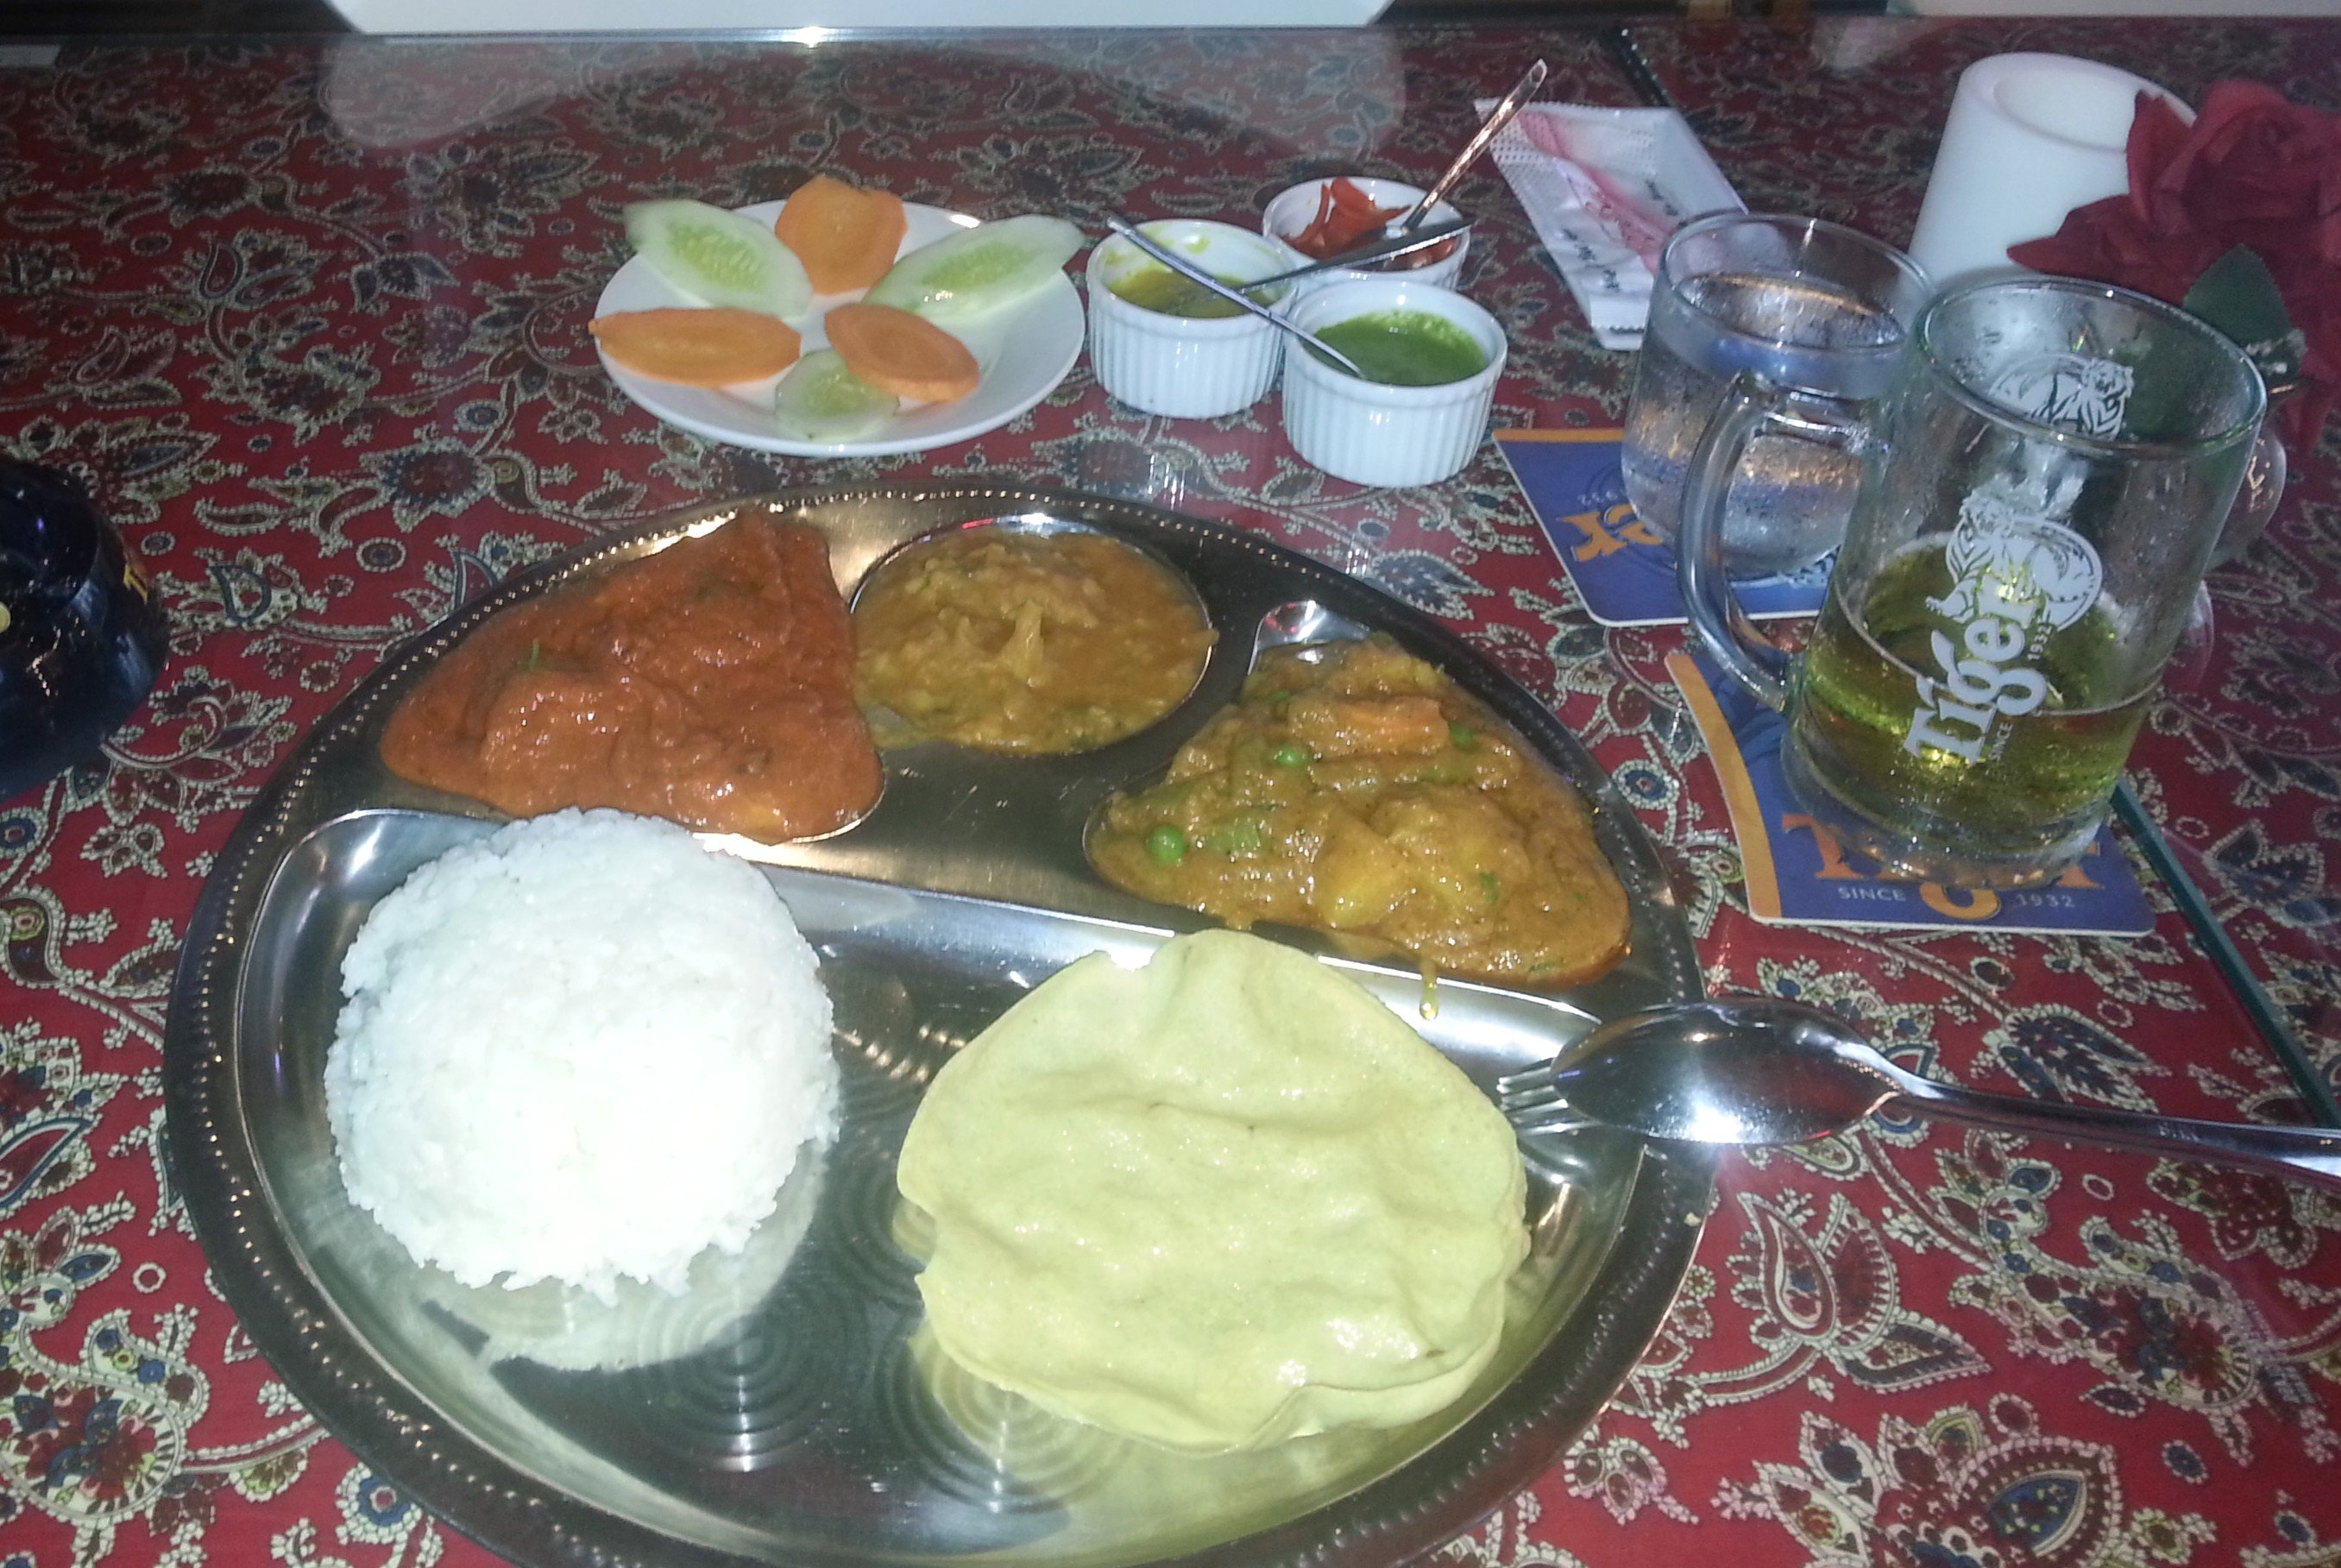 Indian food at the Bollywood Restaurant on Bui Vien Stret